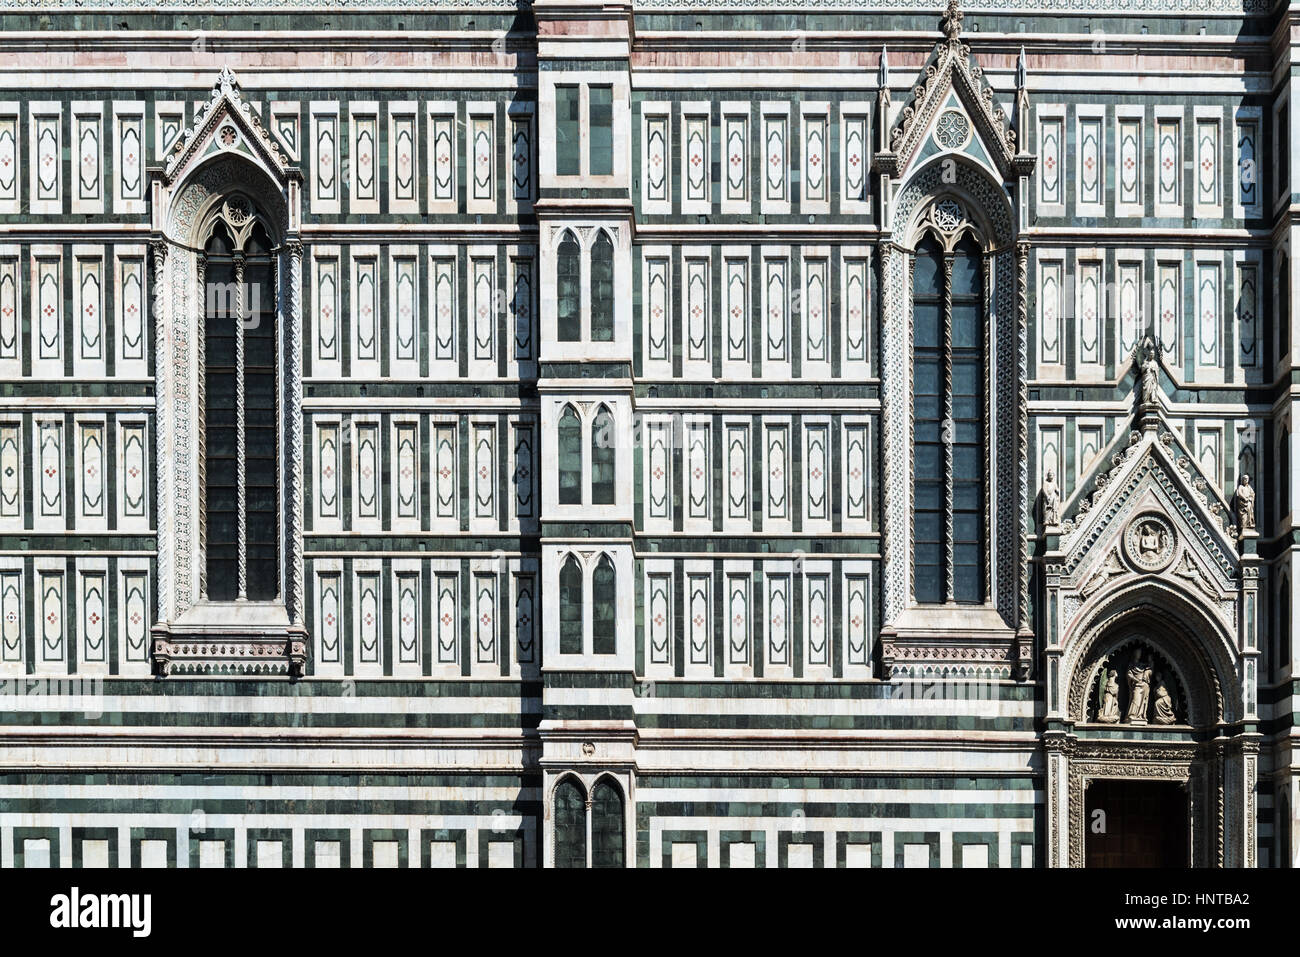 Gothic window - a detail of the facade of the Duomo cathedral in Florence, Italy - Stock Image